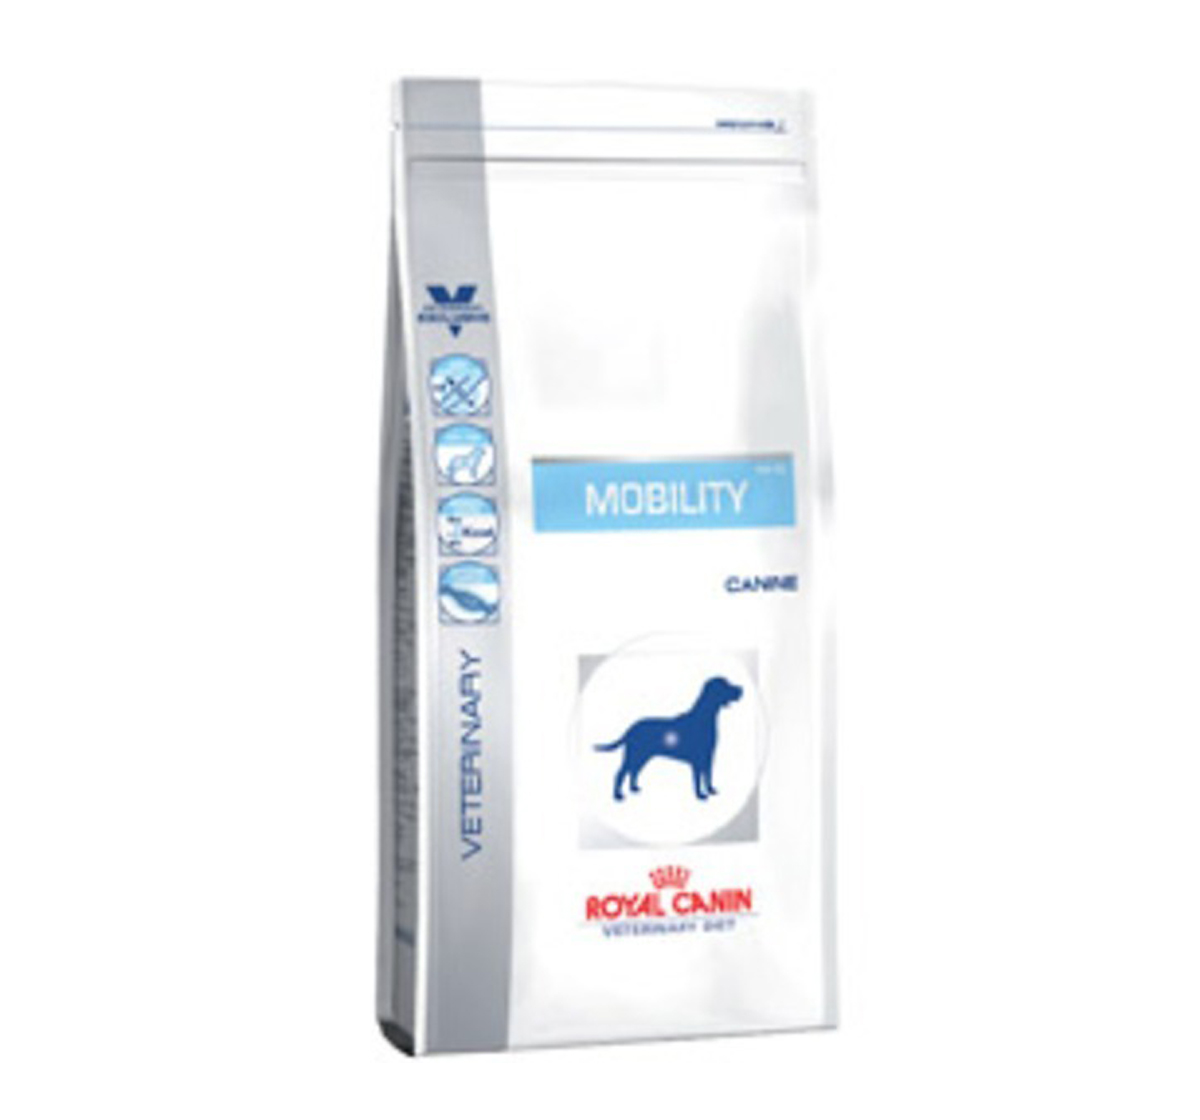 Royal Canin Veterinary Diet Mobility C2P+ -7 Kg